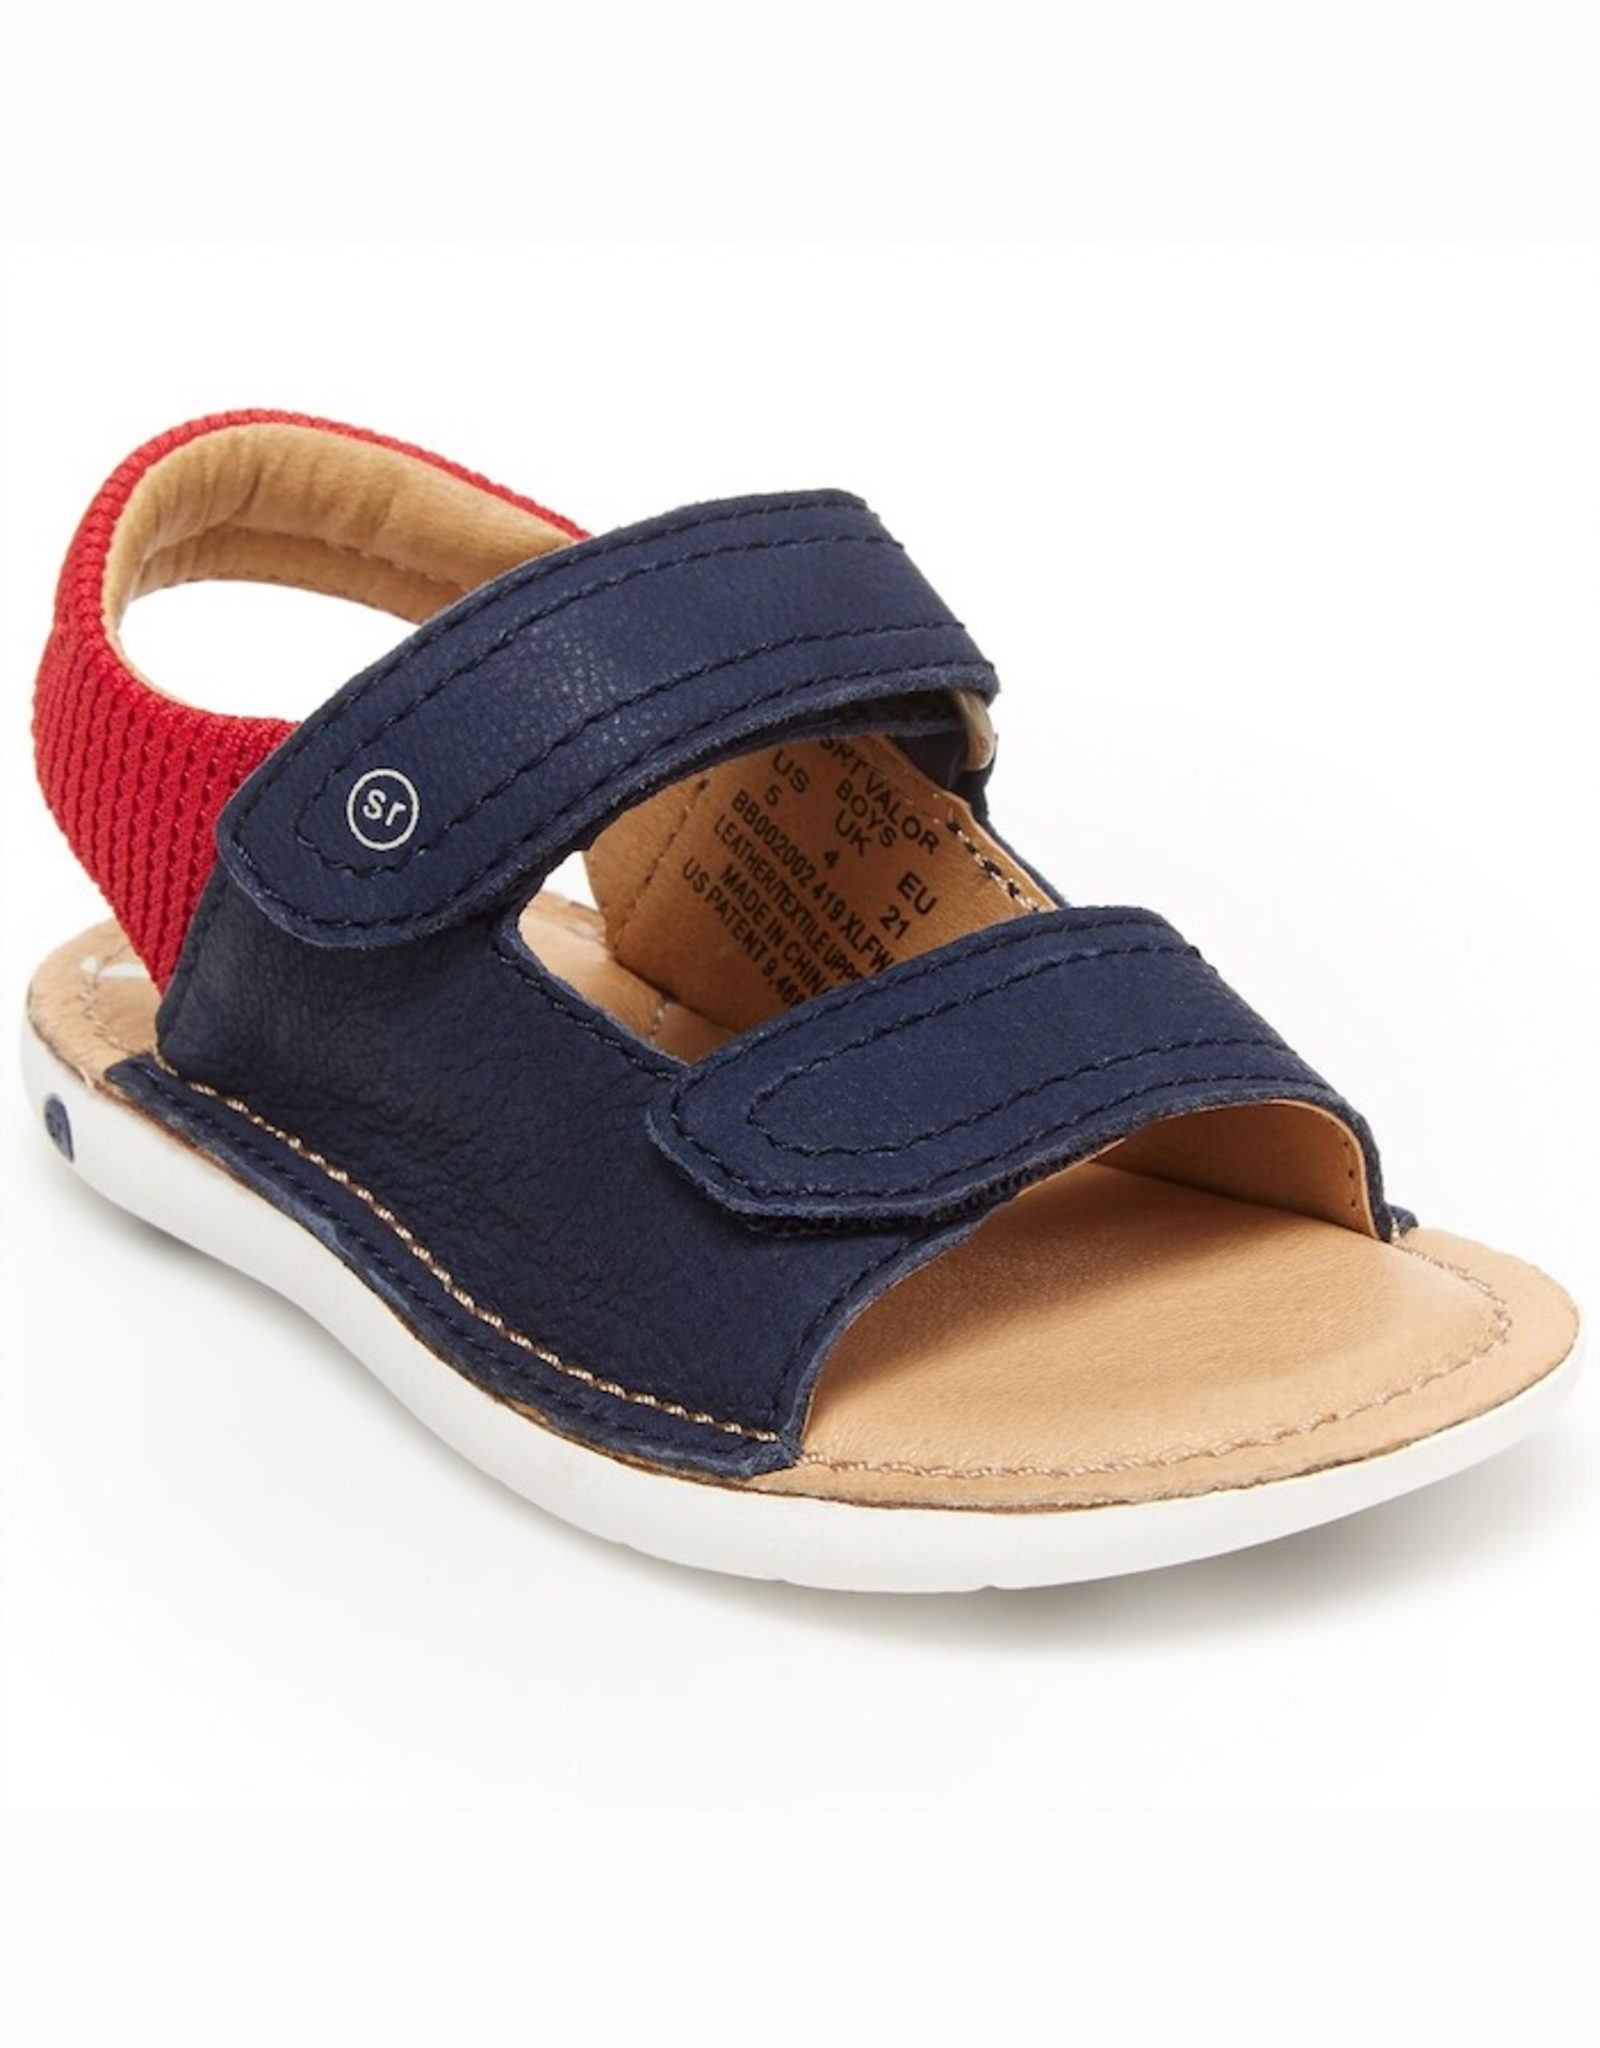 Striderite SRTech Valor Sandal in Navy & Red